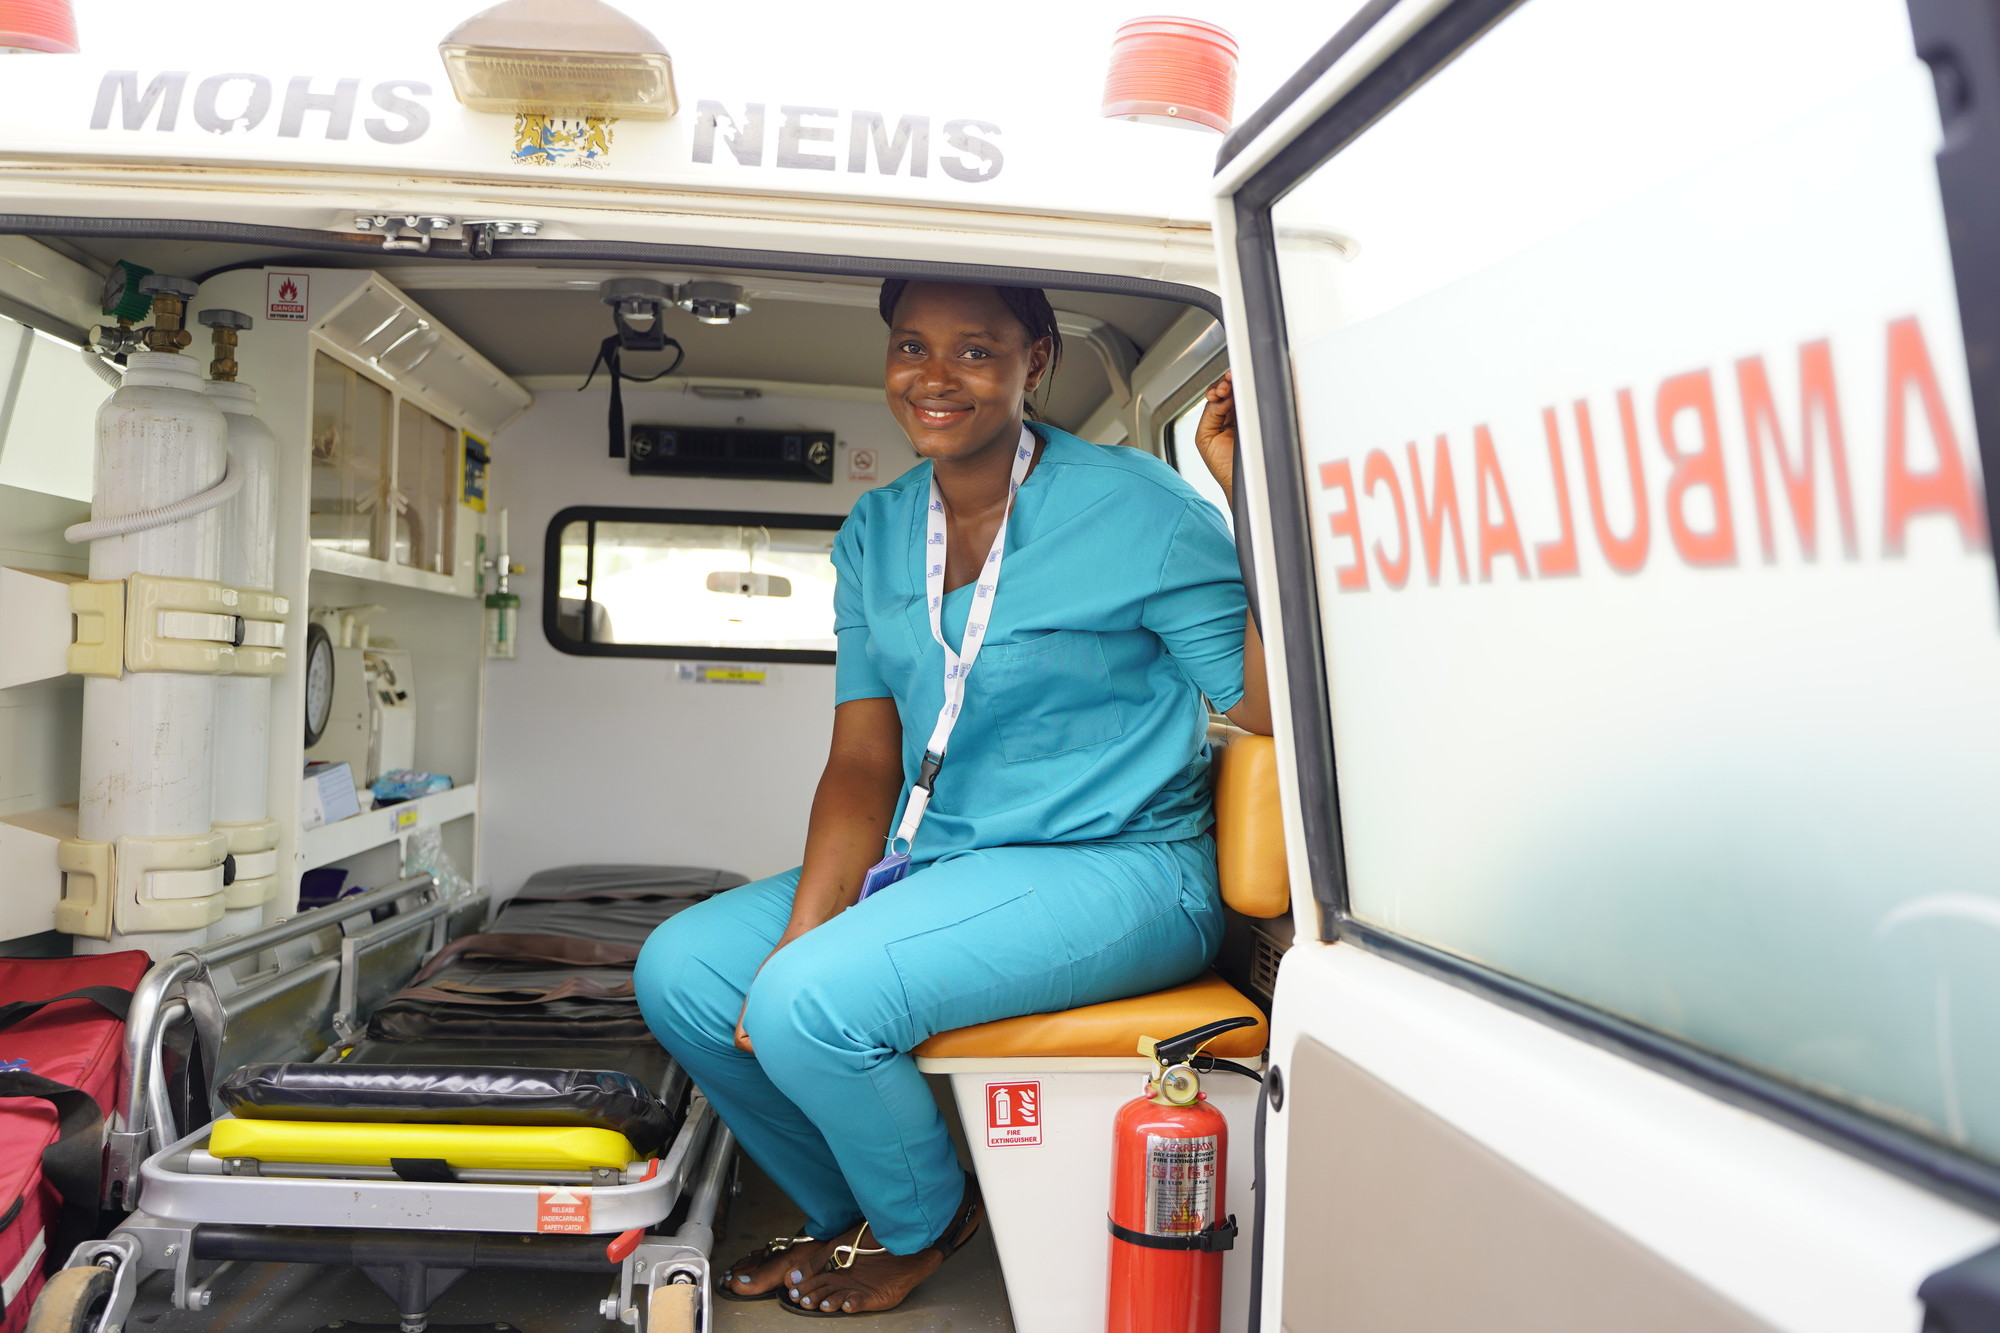 A female health care worker sits in the back of an ambulance.